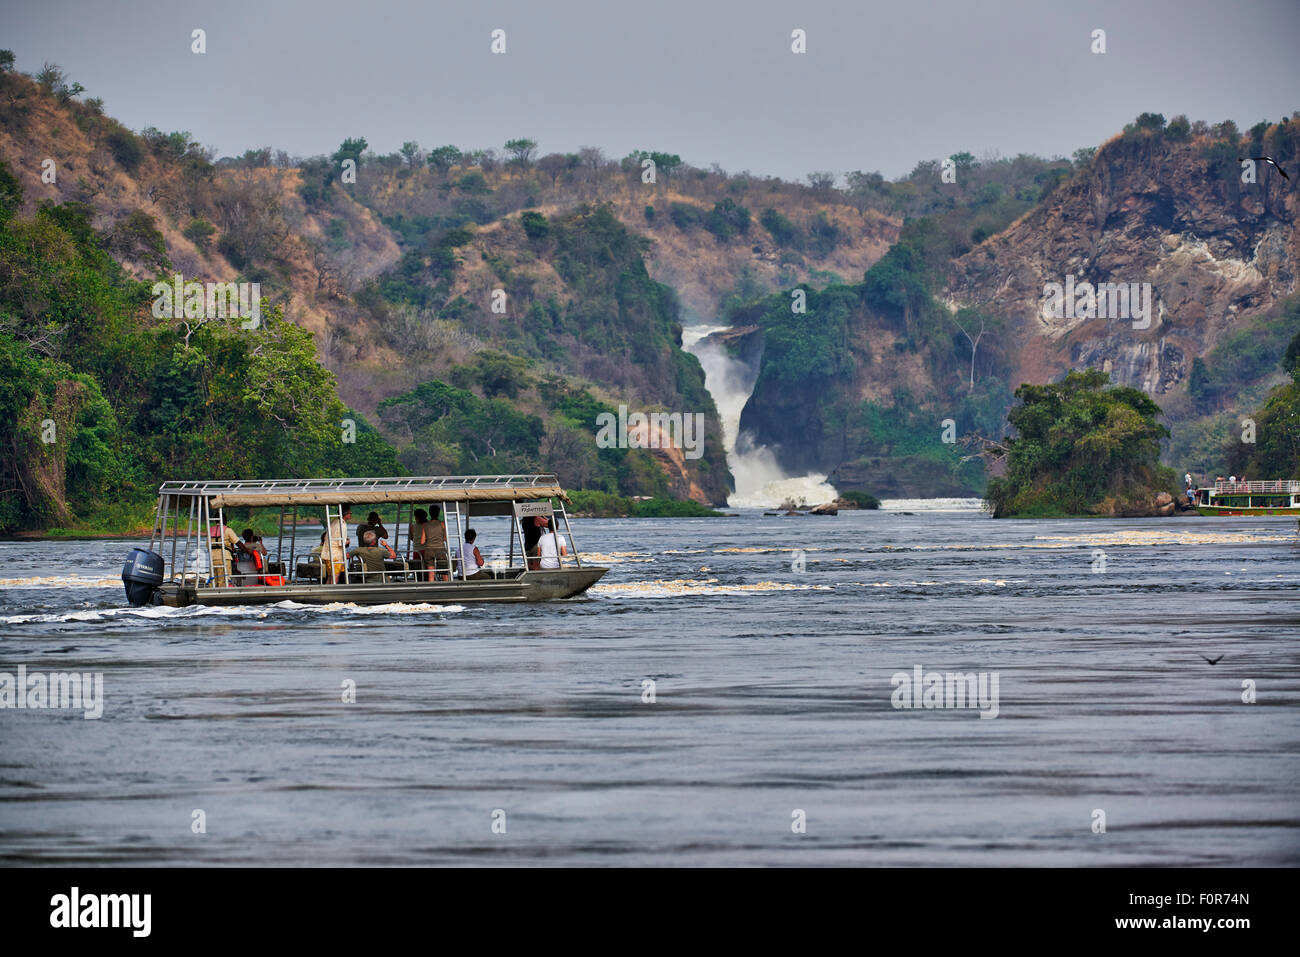 tourist ship on River Nile in front of Murchison Falls, Murchison Falls National Park, Uganda, Africa - Stock Image